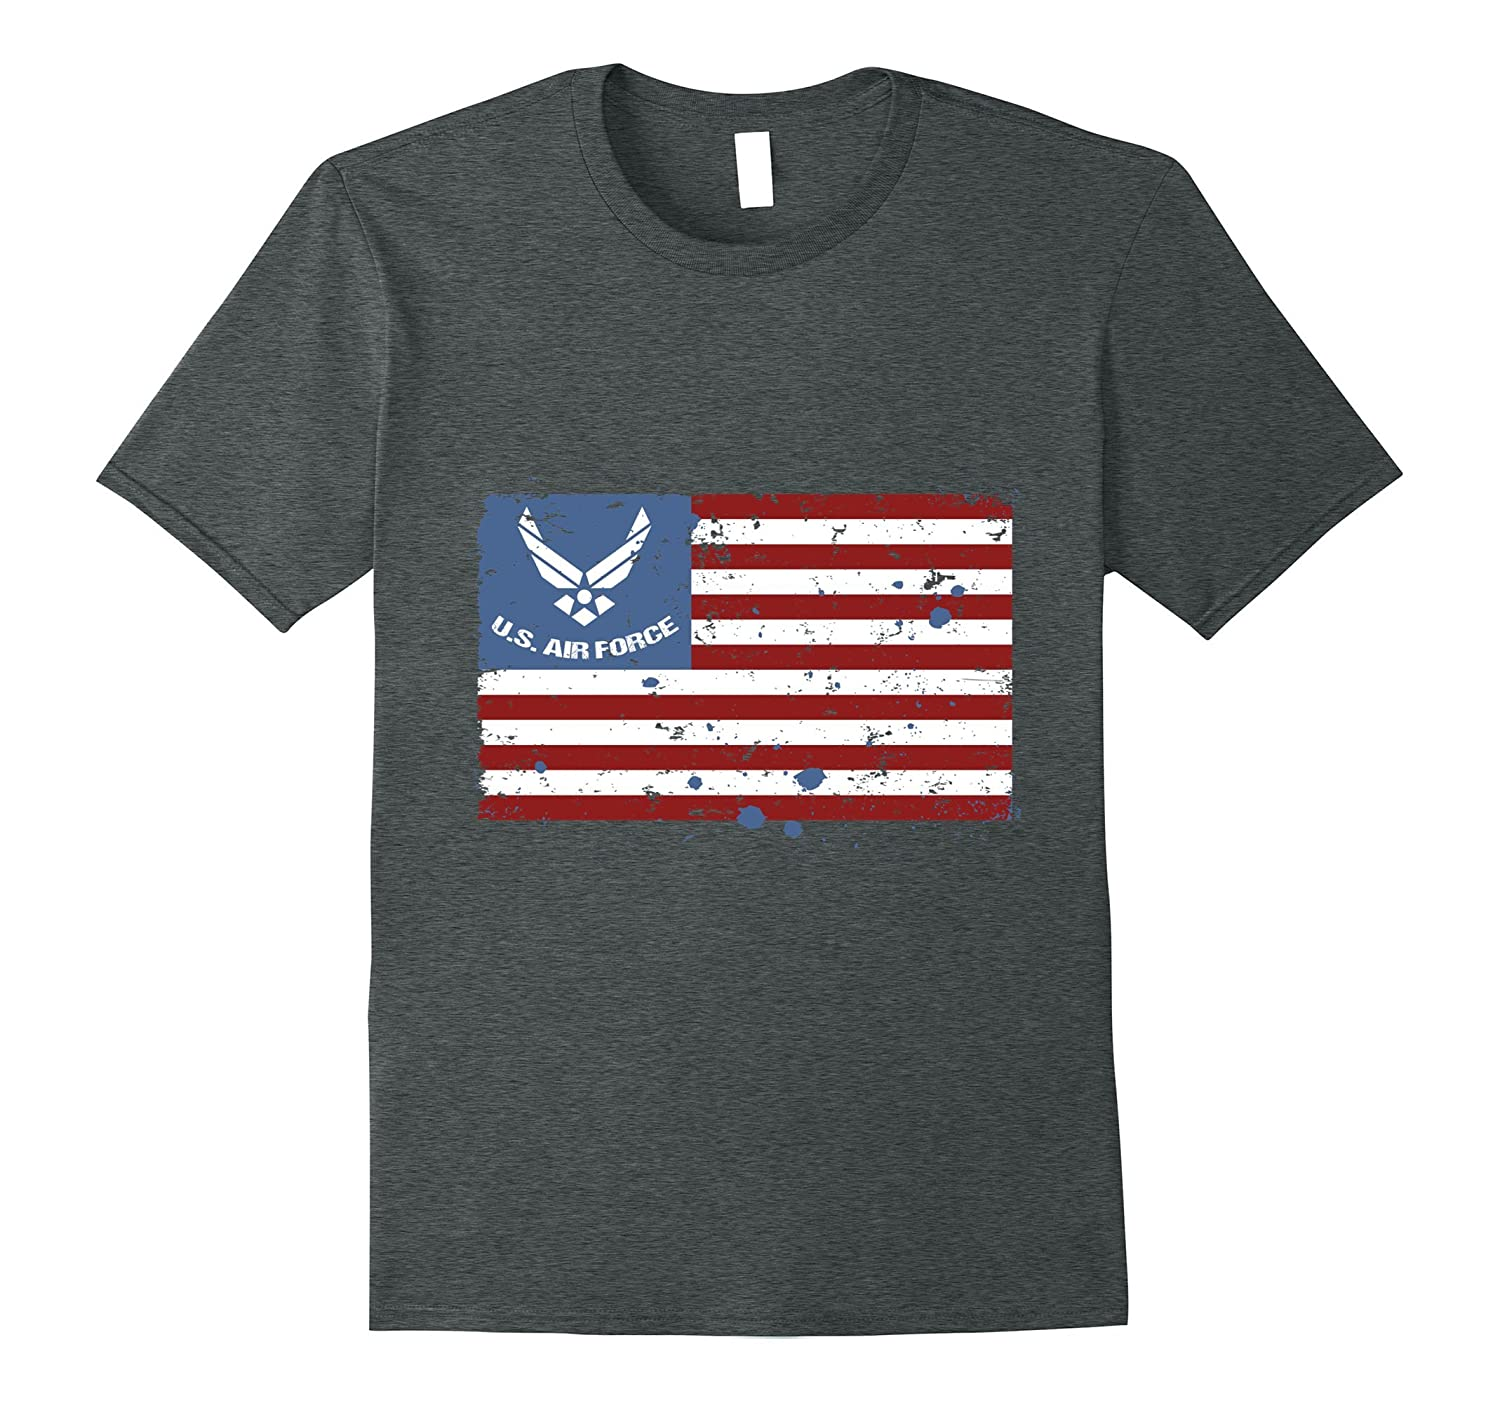 US Air Force American Flag T Shirt For Men, Women & Kids-4LVS